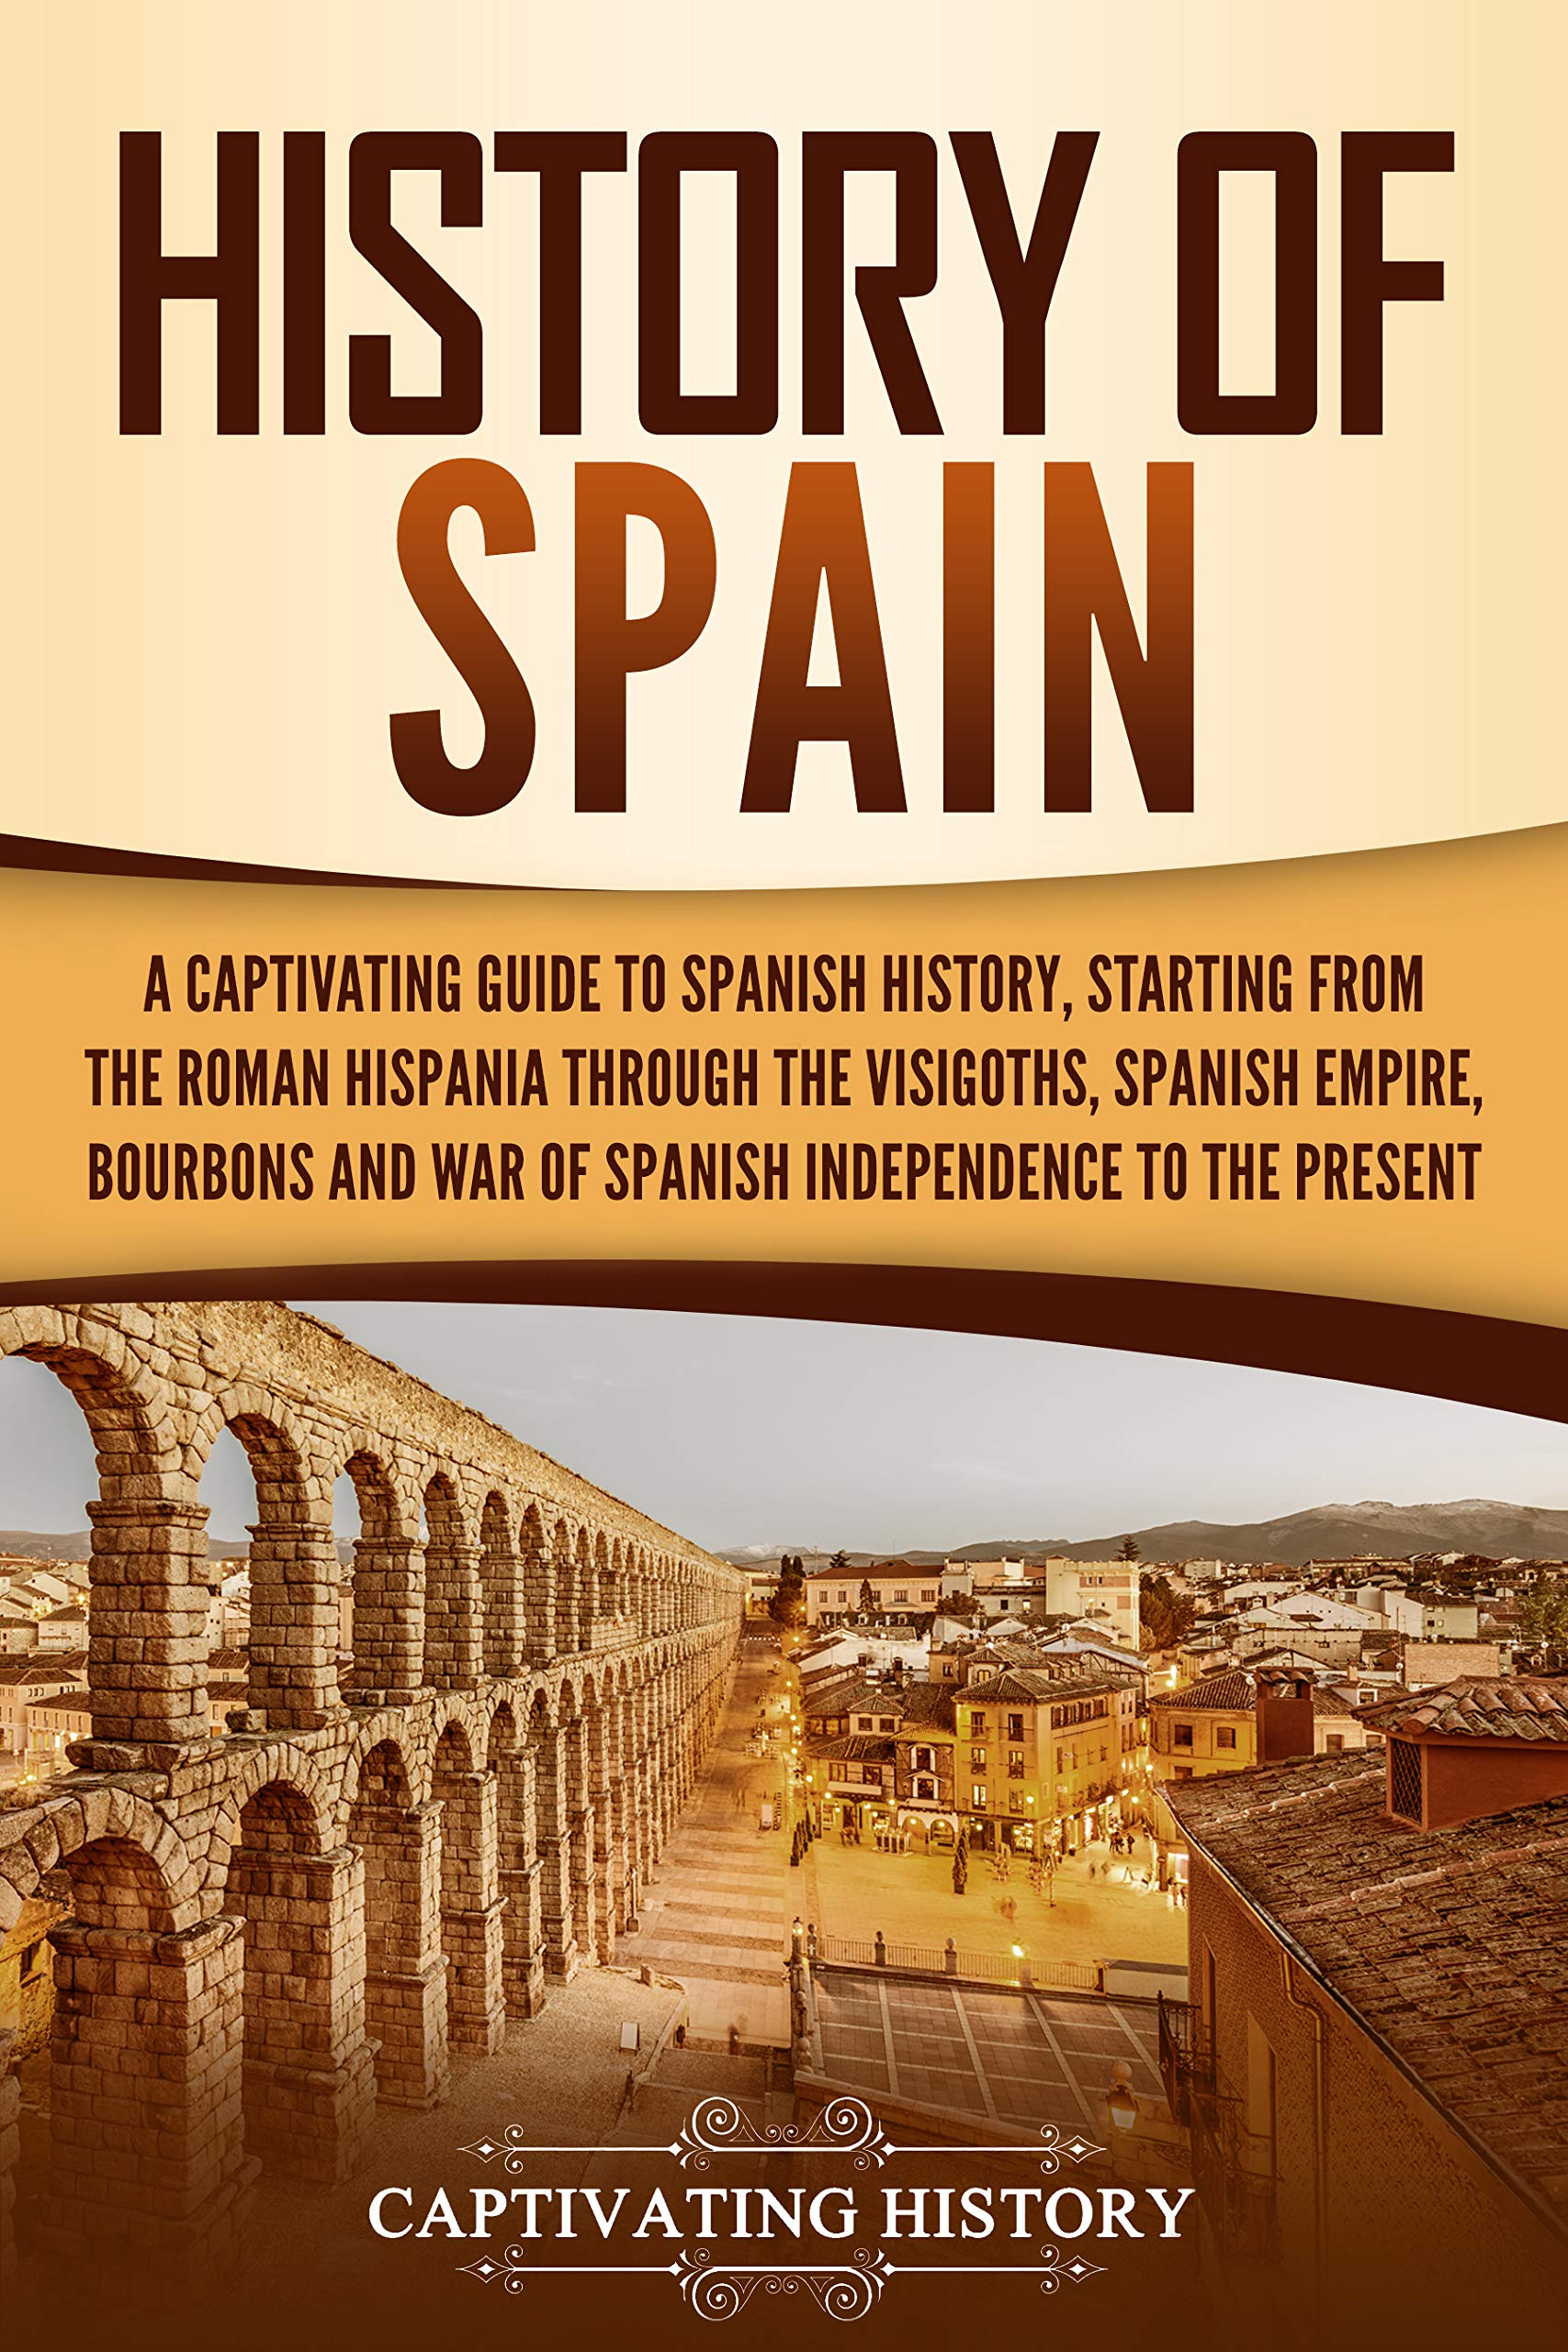 History of Spain: A Captivating Guide to Spanish History, Starting from Roman Hispania through the Visigoths, the Spanish Empire, the Bourbons, and the War of Spanish Independence to the Present